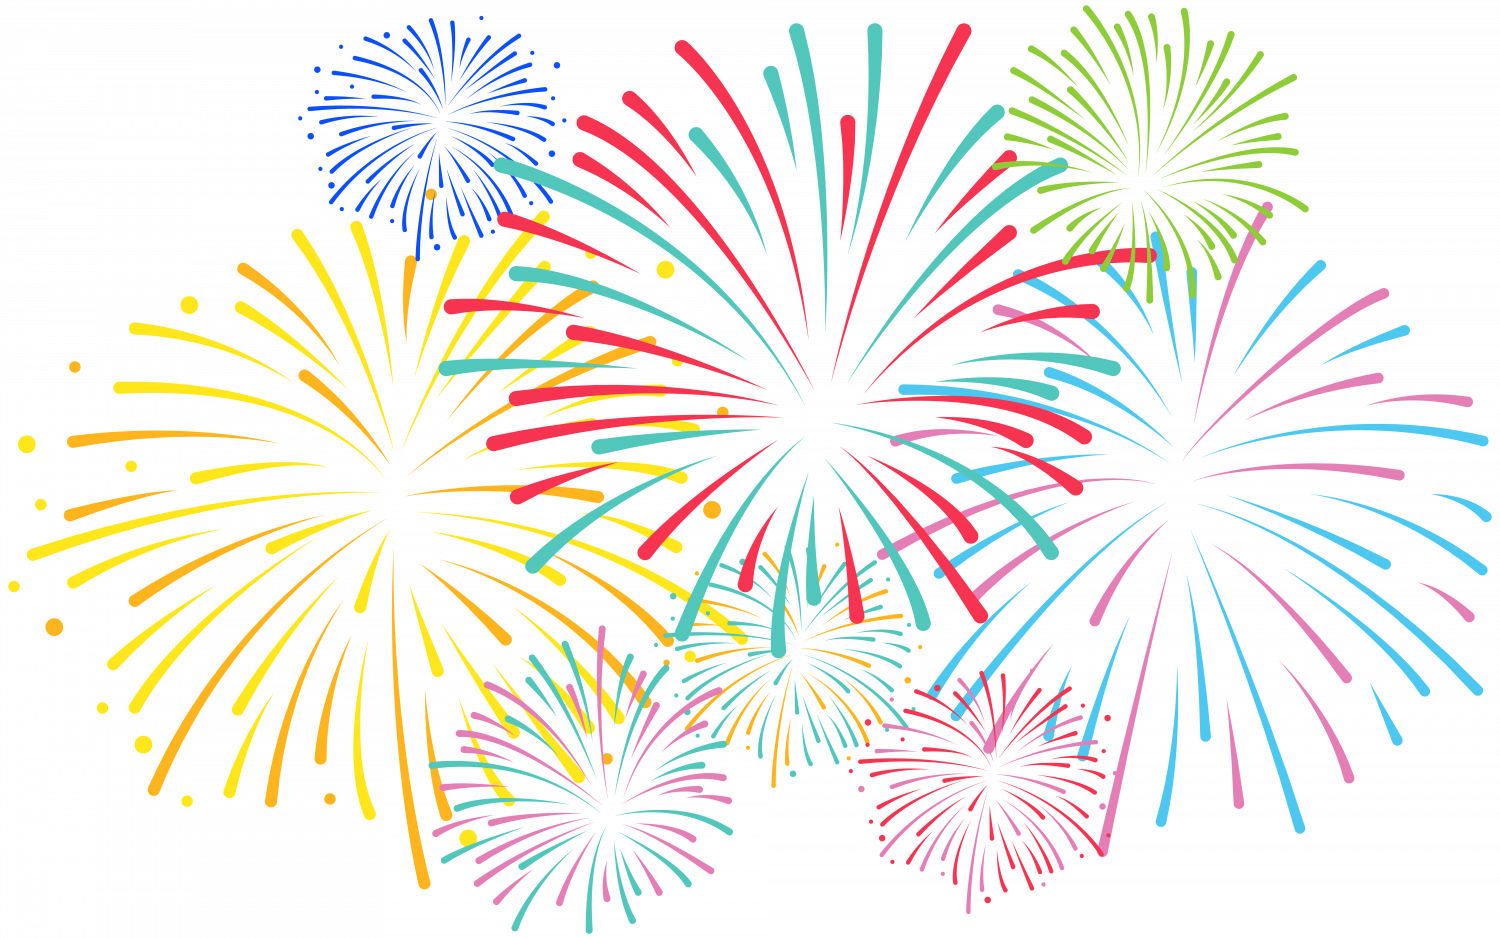 Happy Birthday Anne Images Fireworks Clipart.